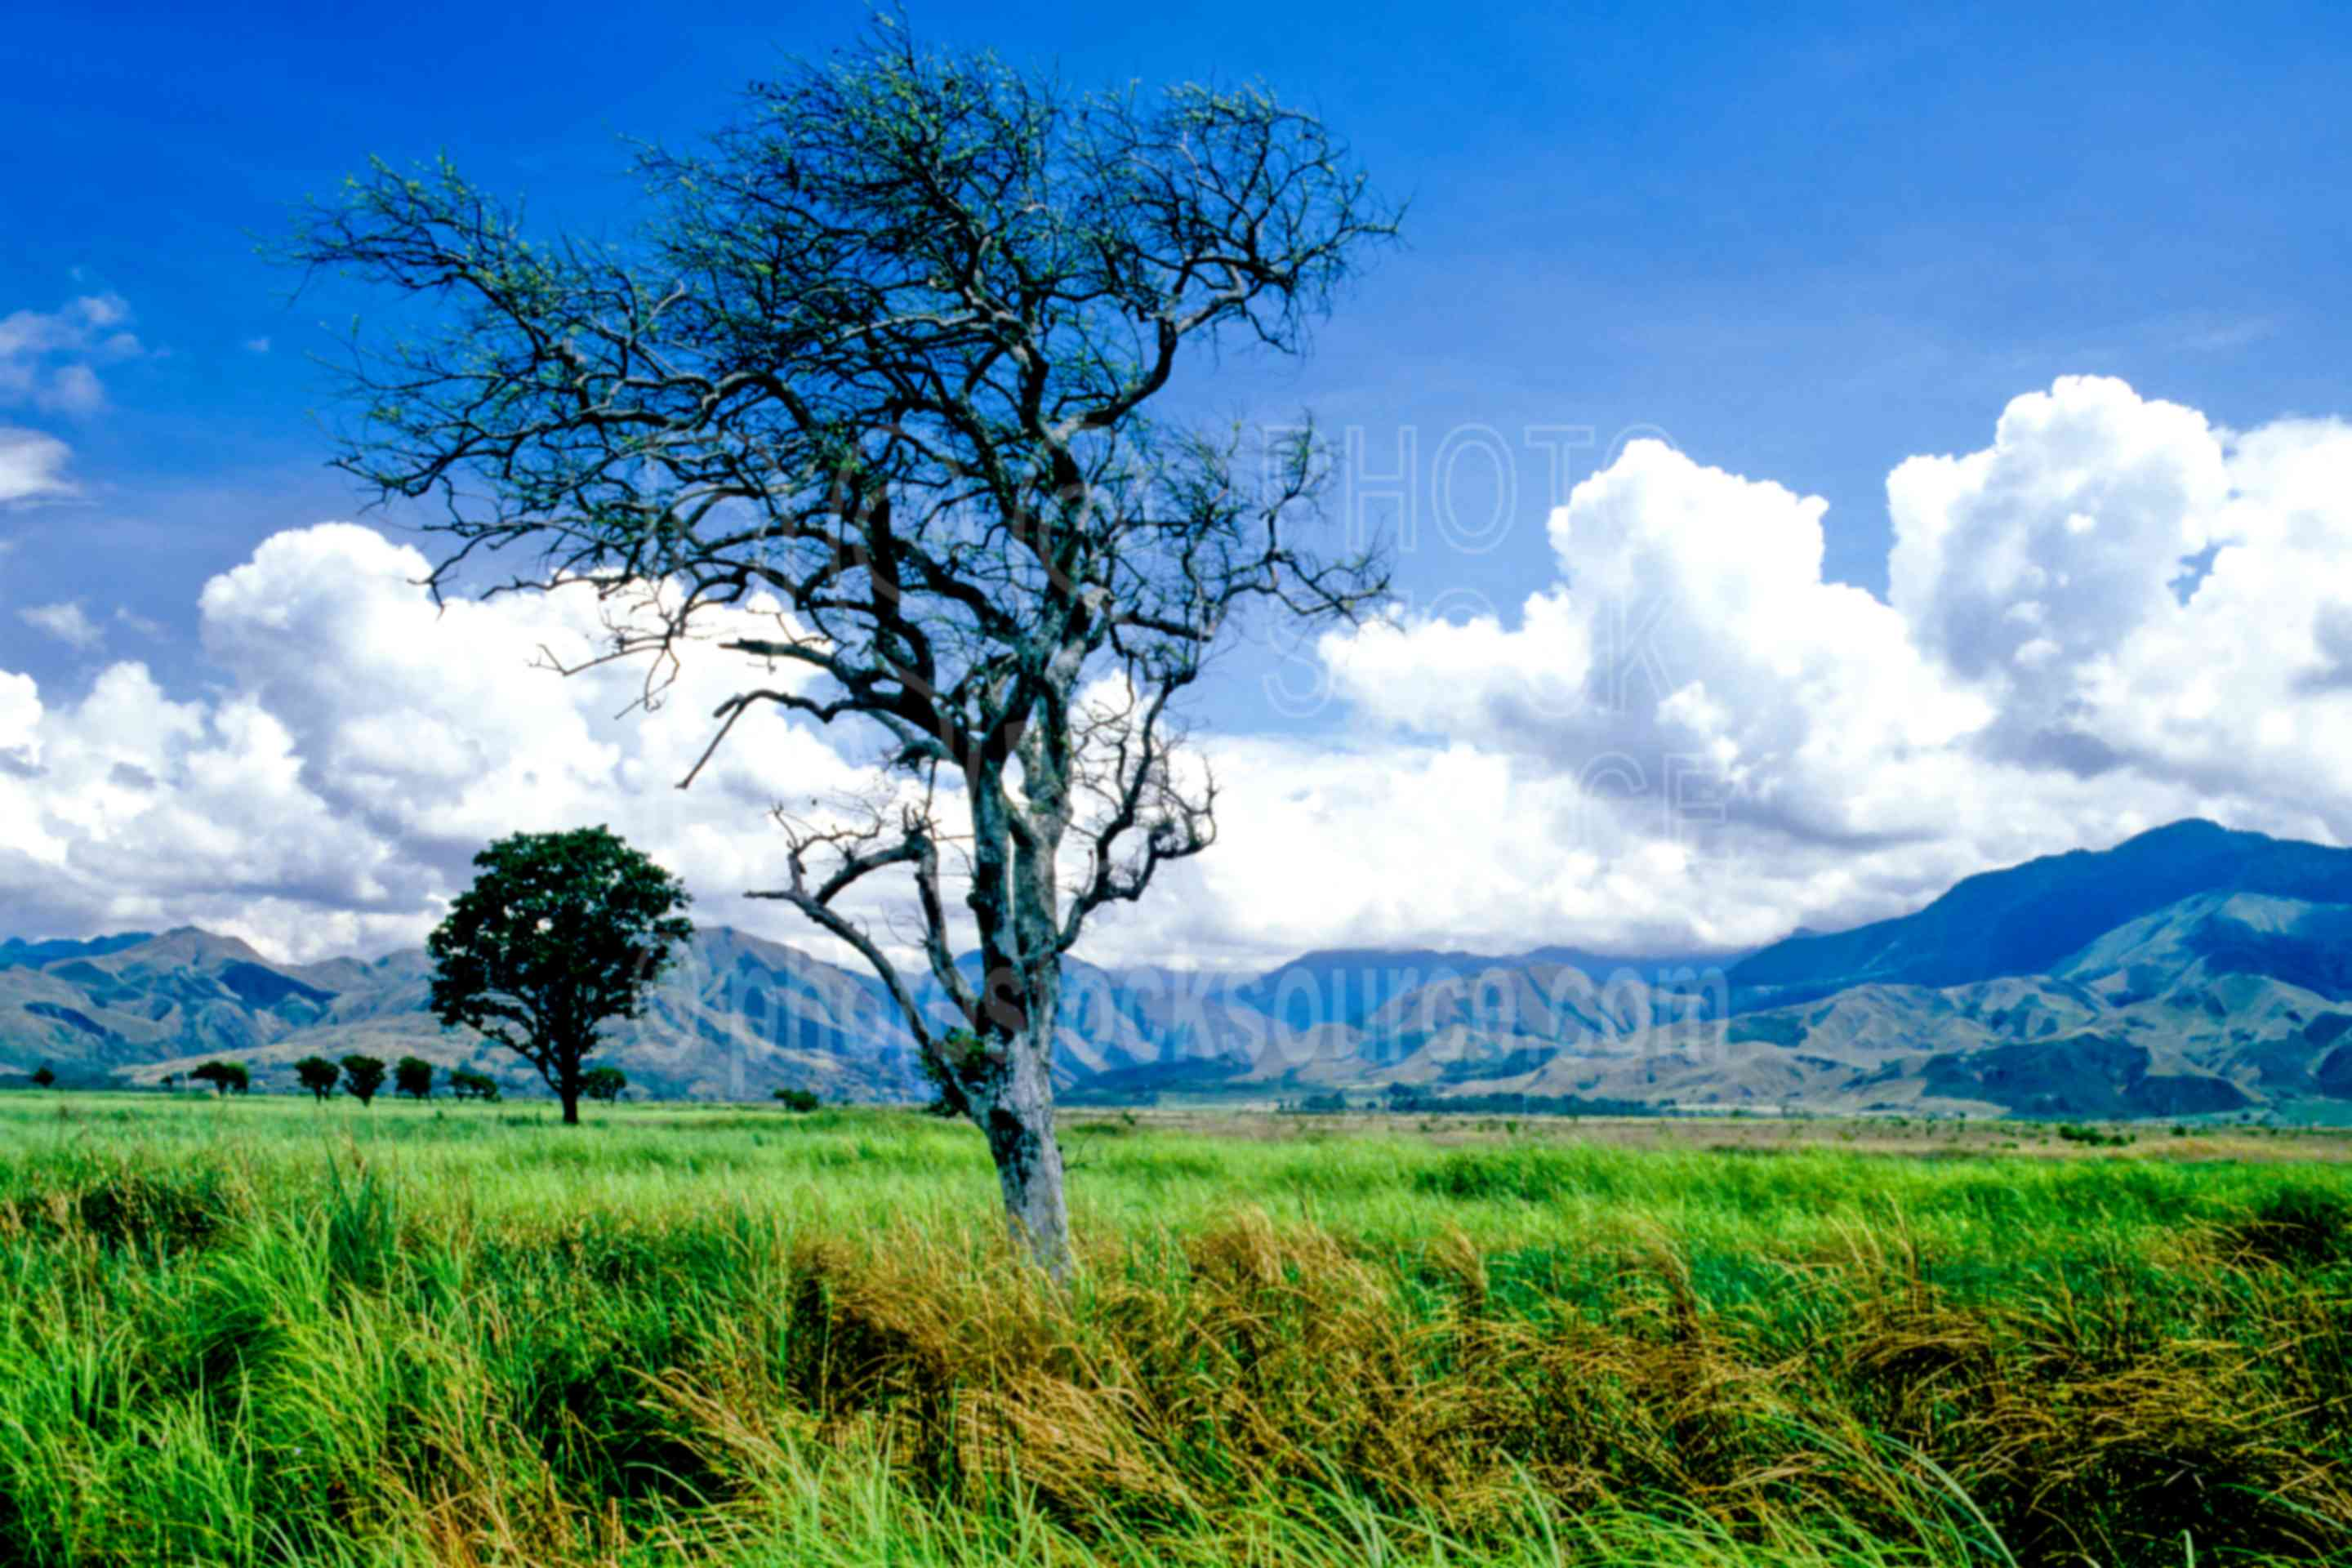 Grasslands,grass,tree,mountains